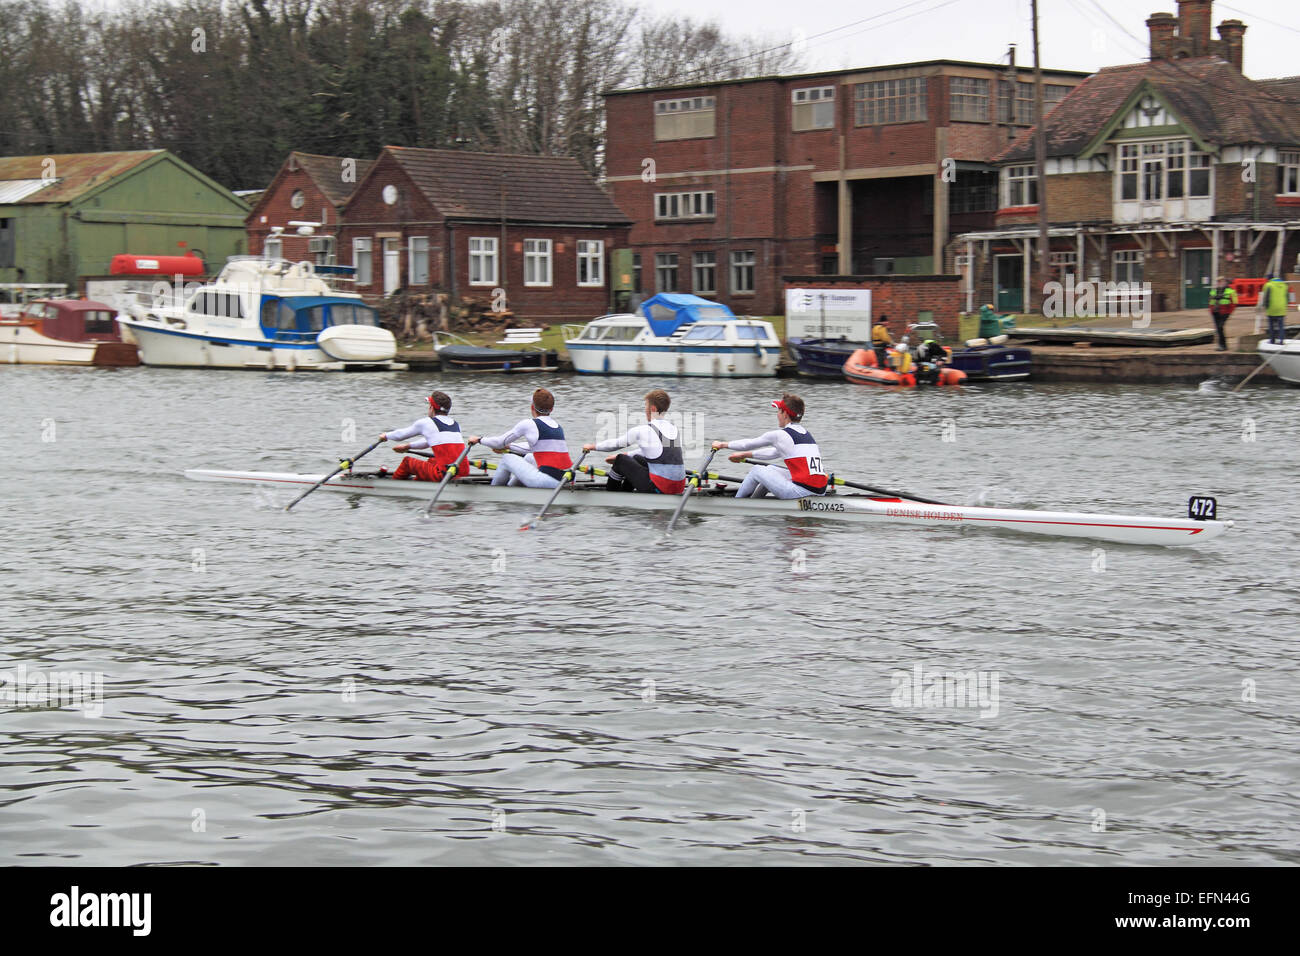 City of Oxford J16A.4x-. Hampton Head (Junior 4s and 8s) rowing event.  River Thames, Hurst Park, East Molesey, - Stock Image